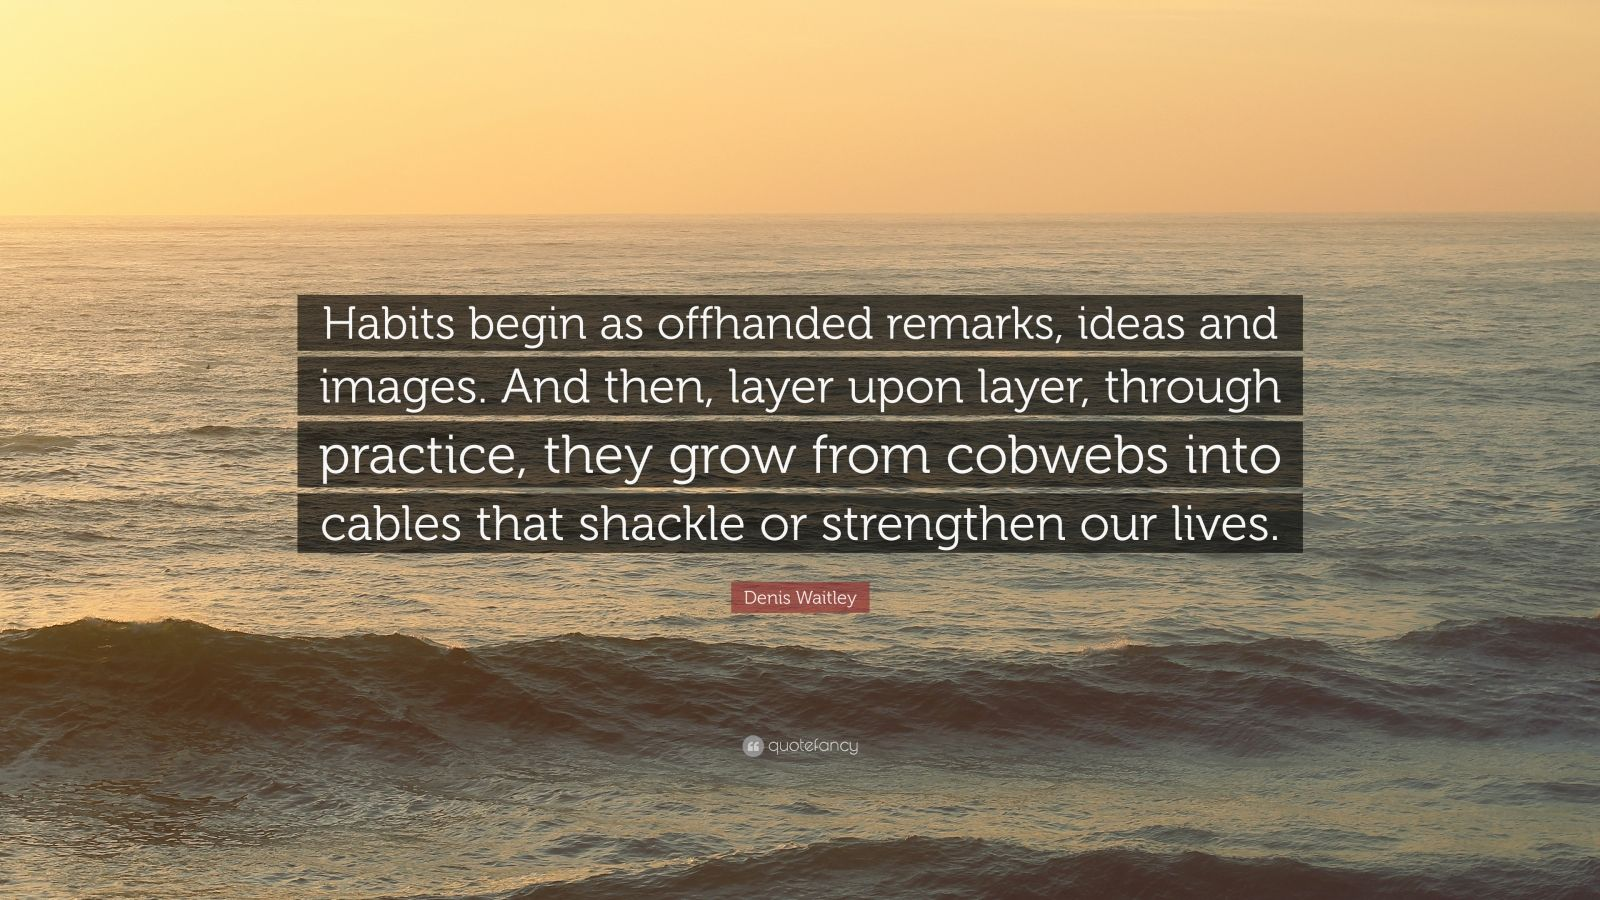 """Denis Waitley Quote: """"Habits begin as offhanded remarks, ideas and images. And then, layer upon layer, through practice, they grow from cobwebs into cables that shackle or strengthen our lives."""""""